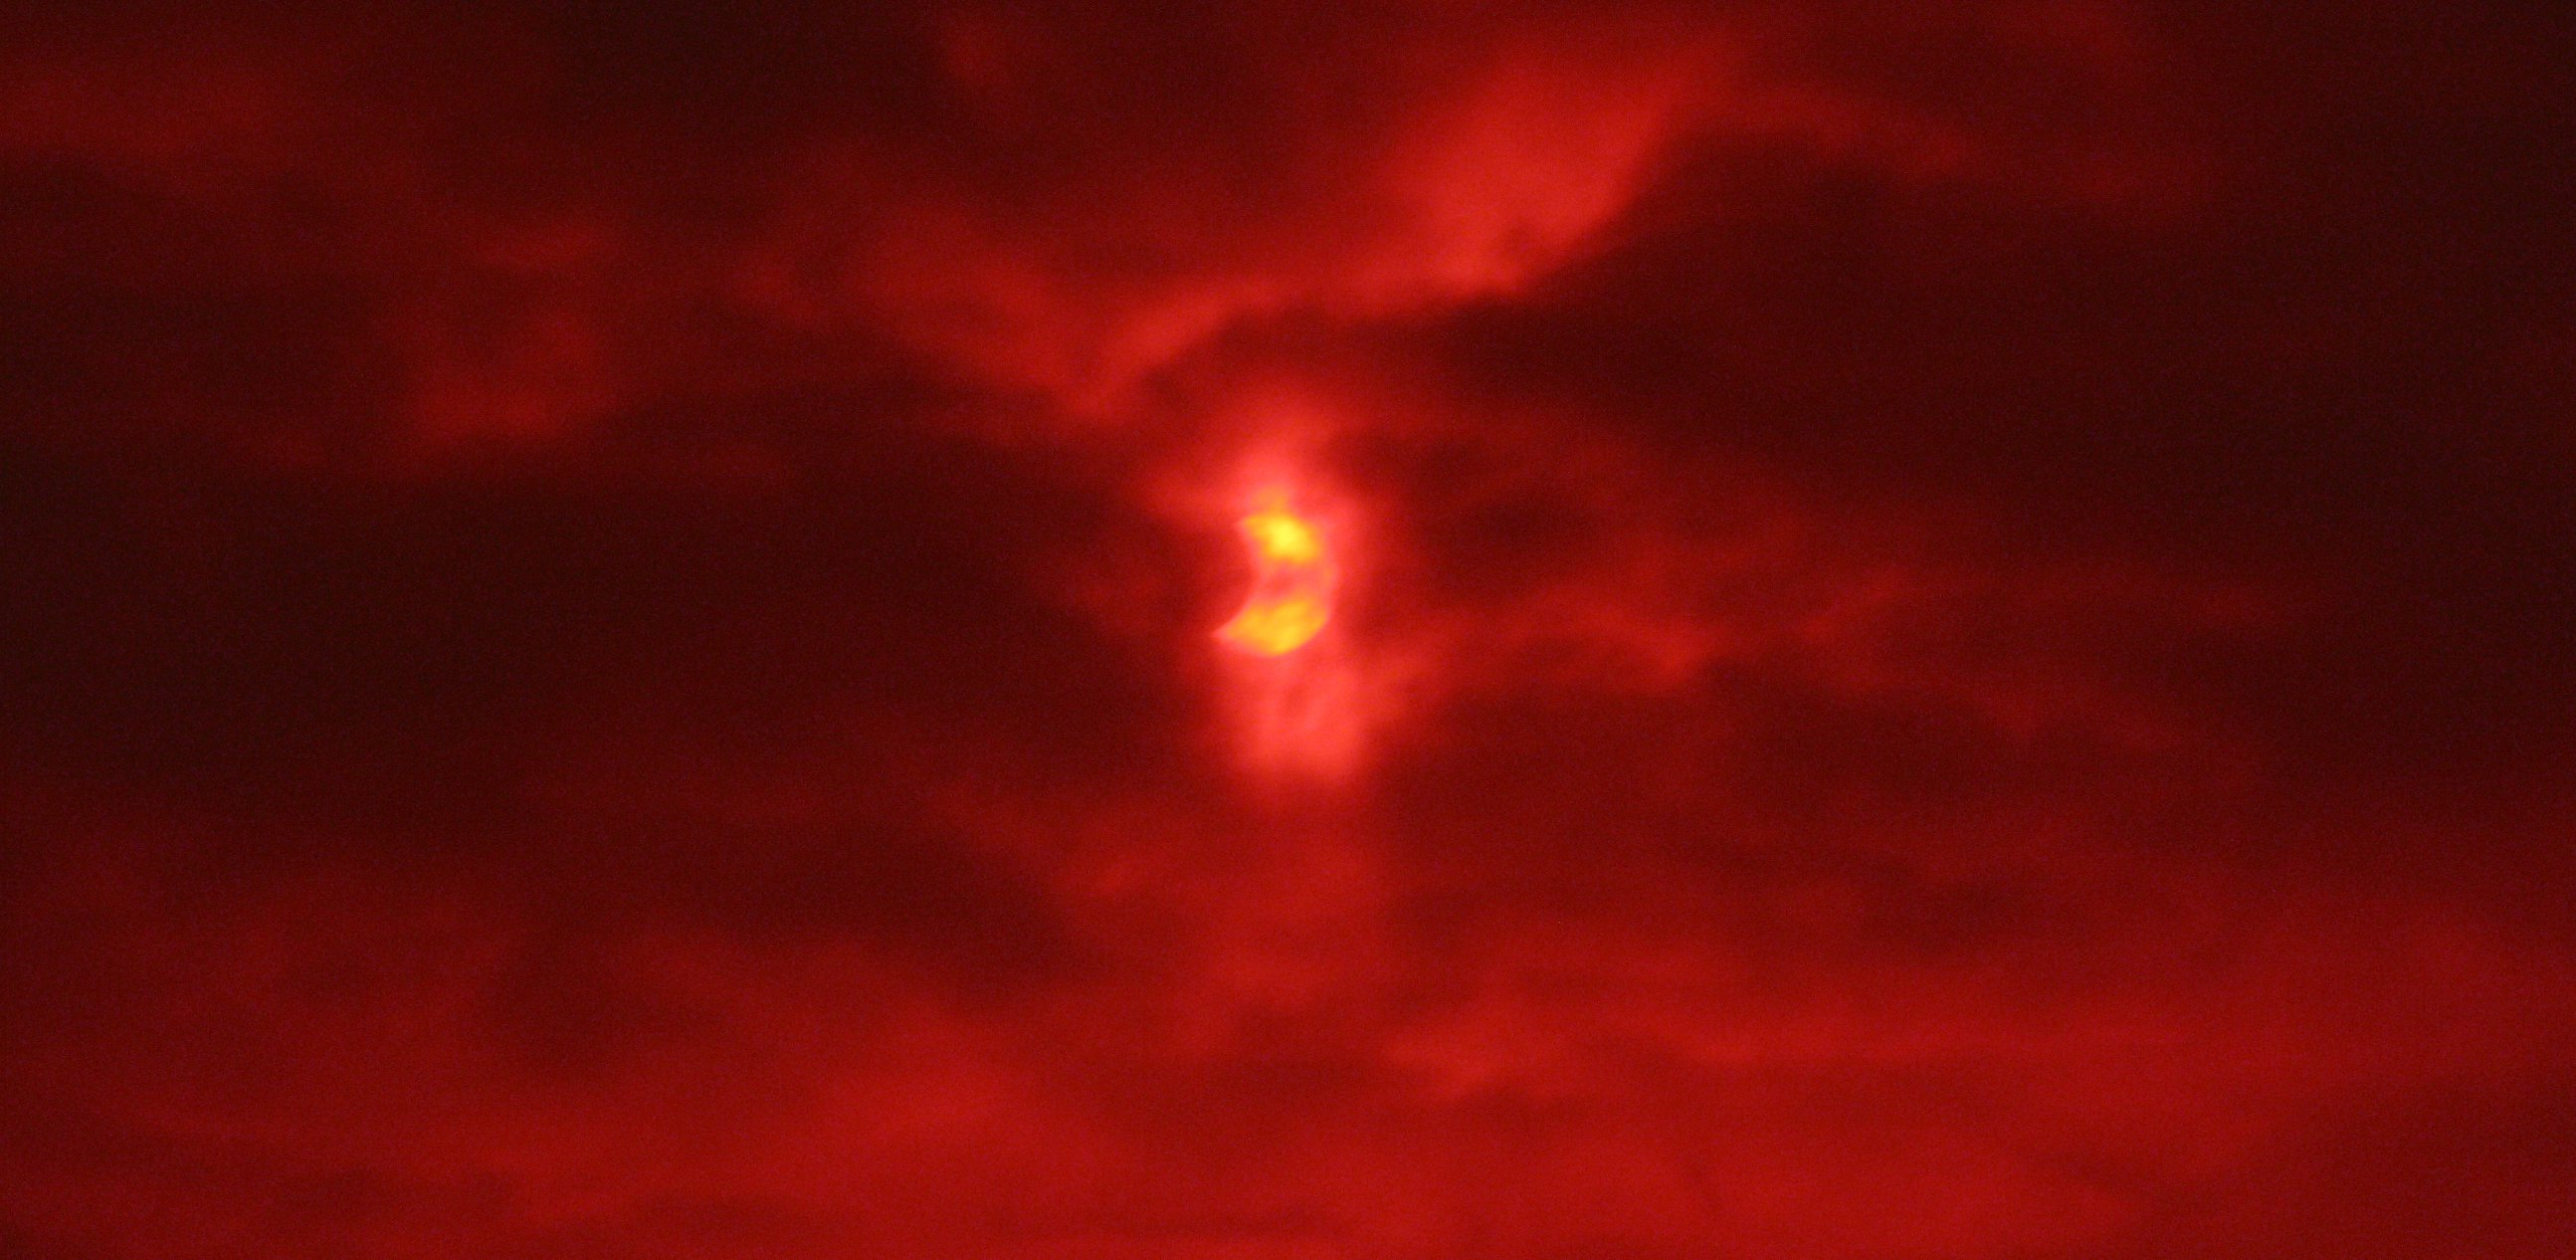 Partial solar eclipse 2011